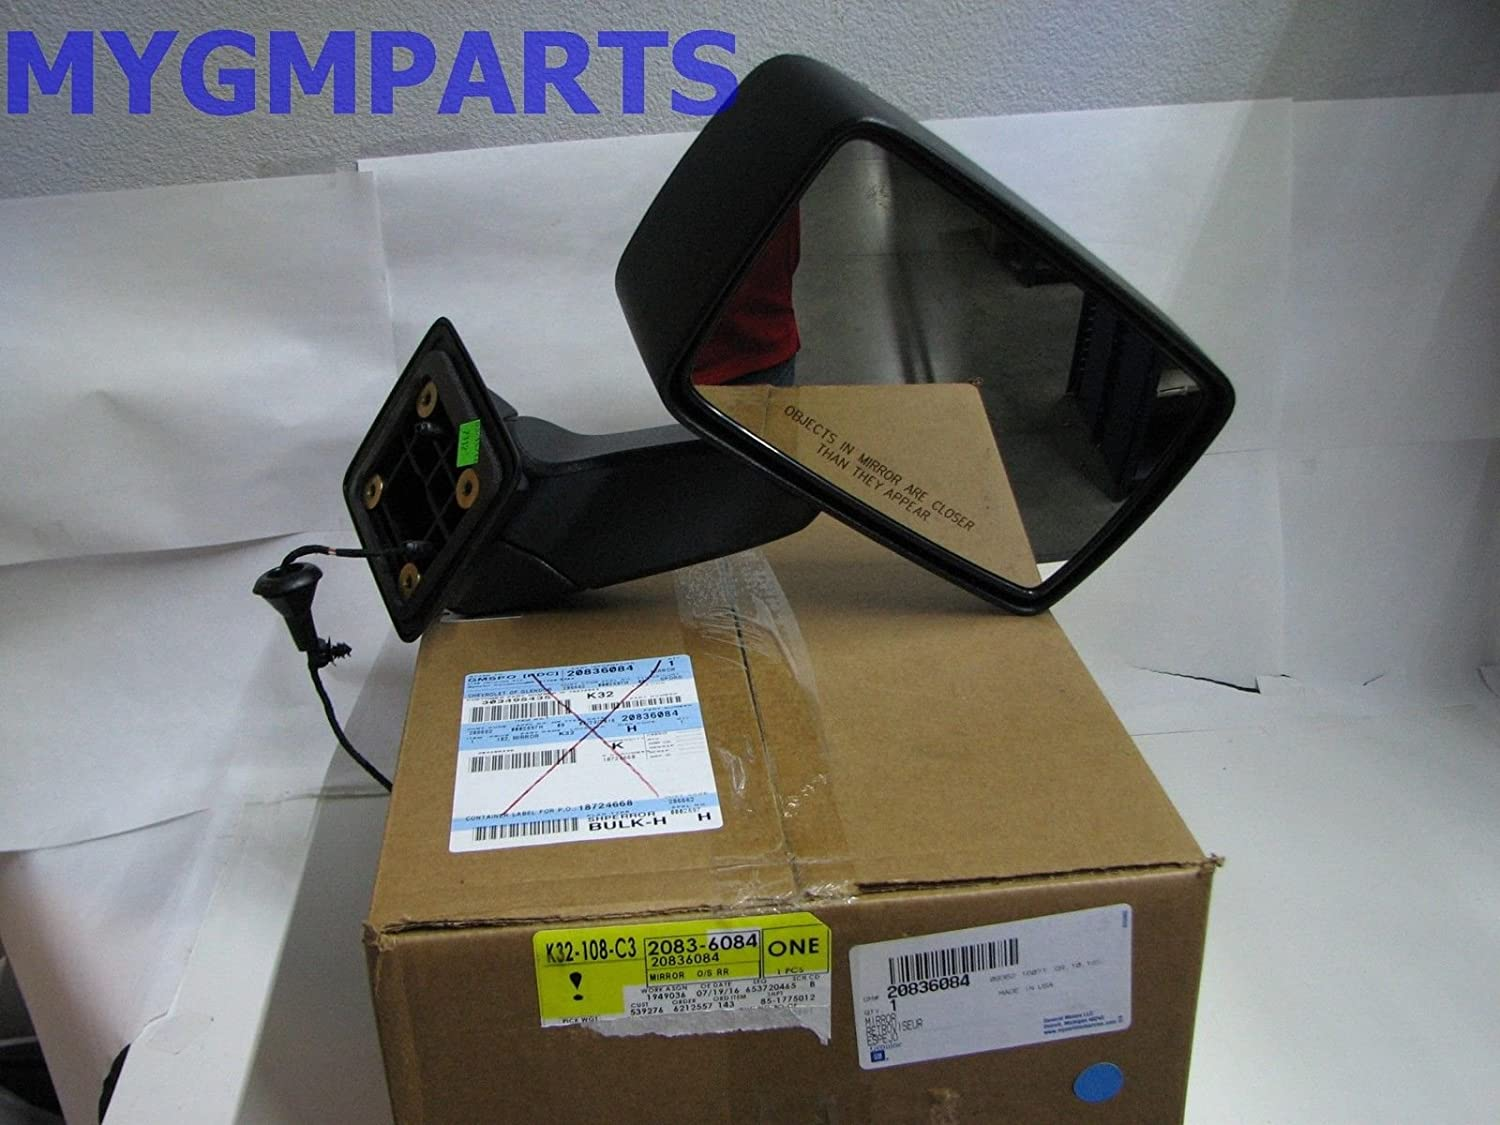 New Orleans Super sale period limited Mall General Motors 20836084 Mirror